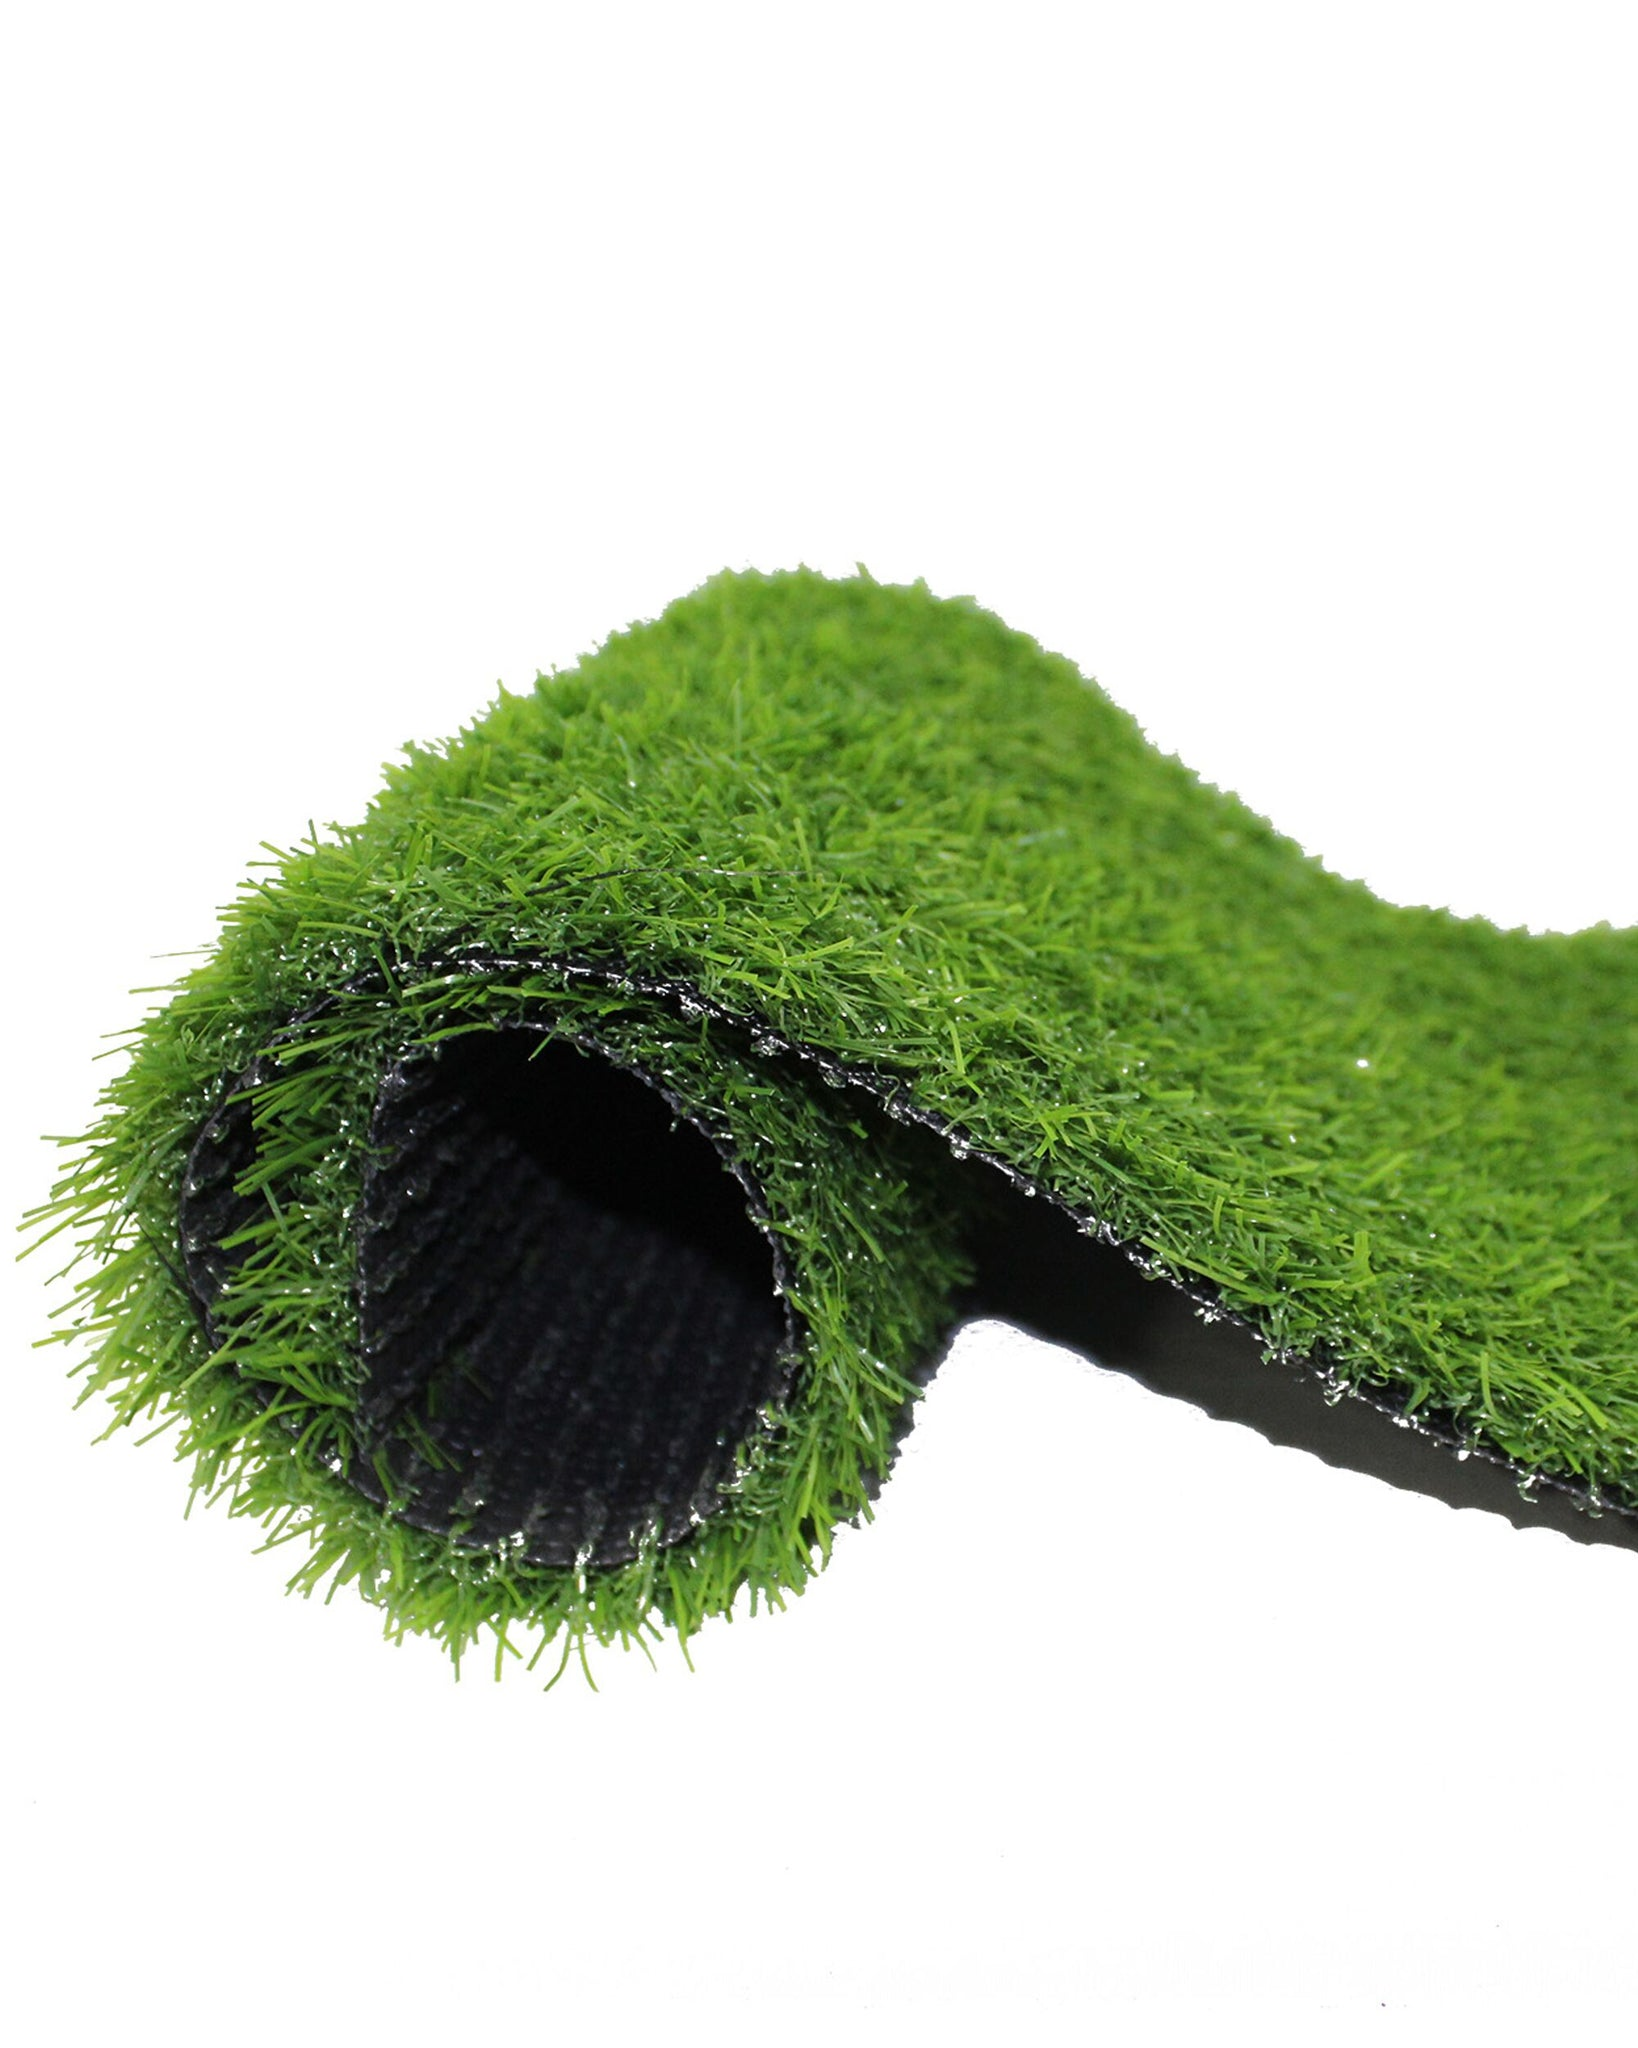 Artificial Lawn Grass - Artificial Flowers & Plants - PolliNation